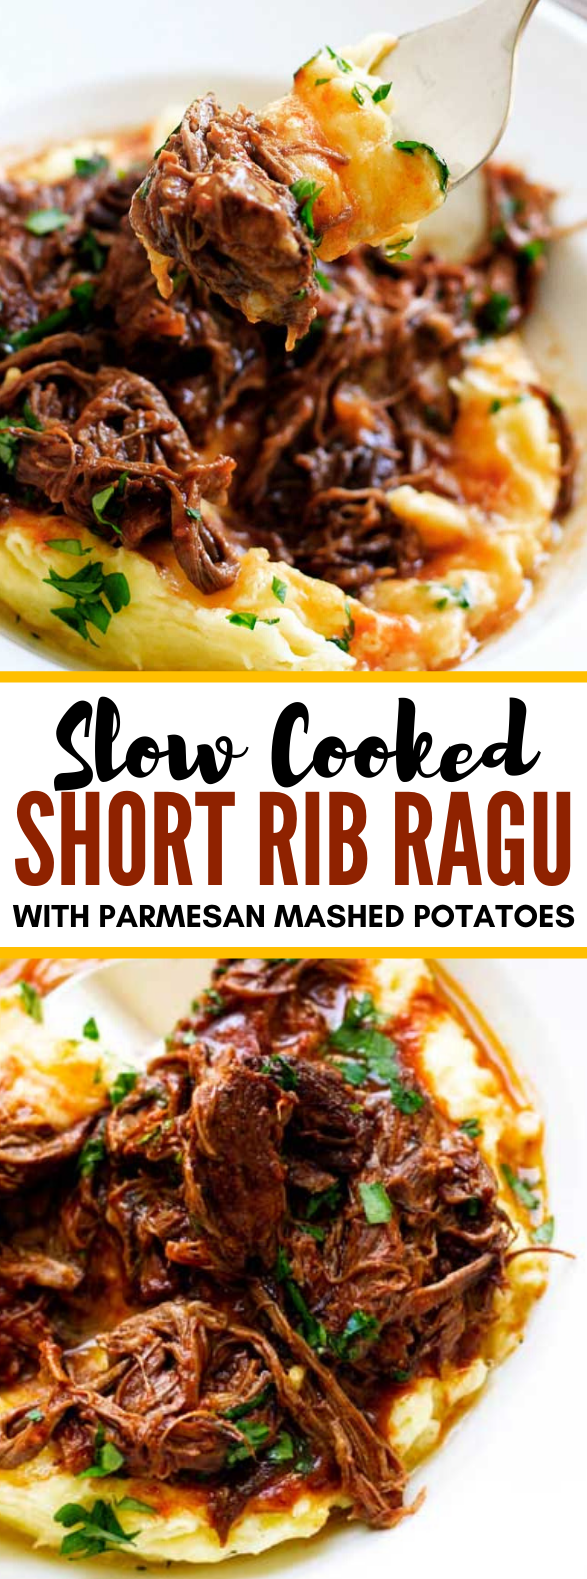 Slow-Cooked Short Rib Ragu #dinner #lunch